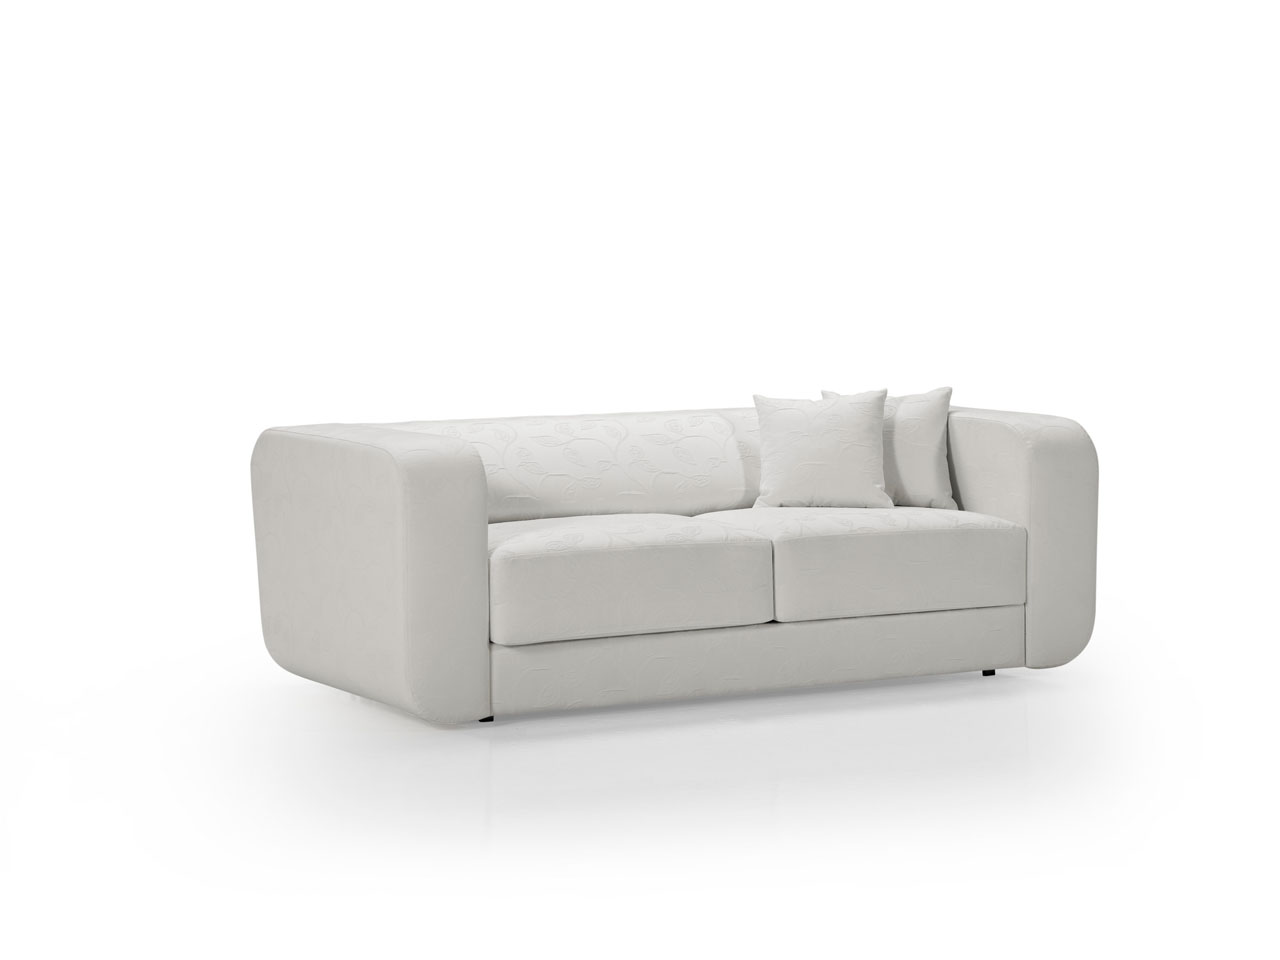 Sofas de diseo baratos luxury modern home furniture for Sofas diseno baratos